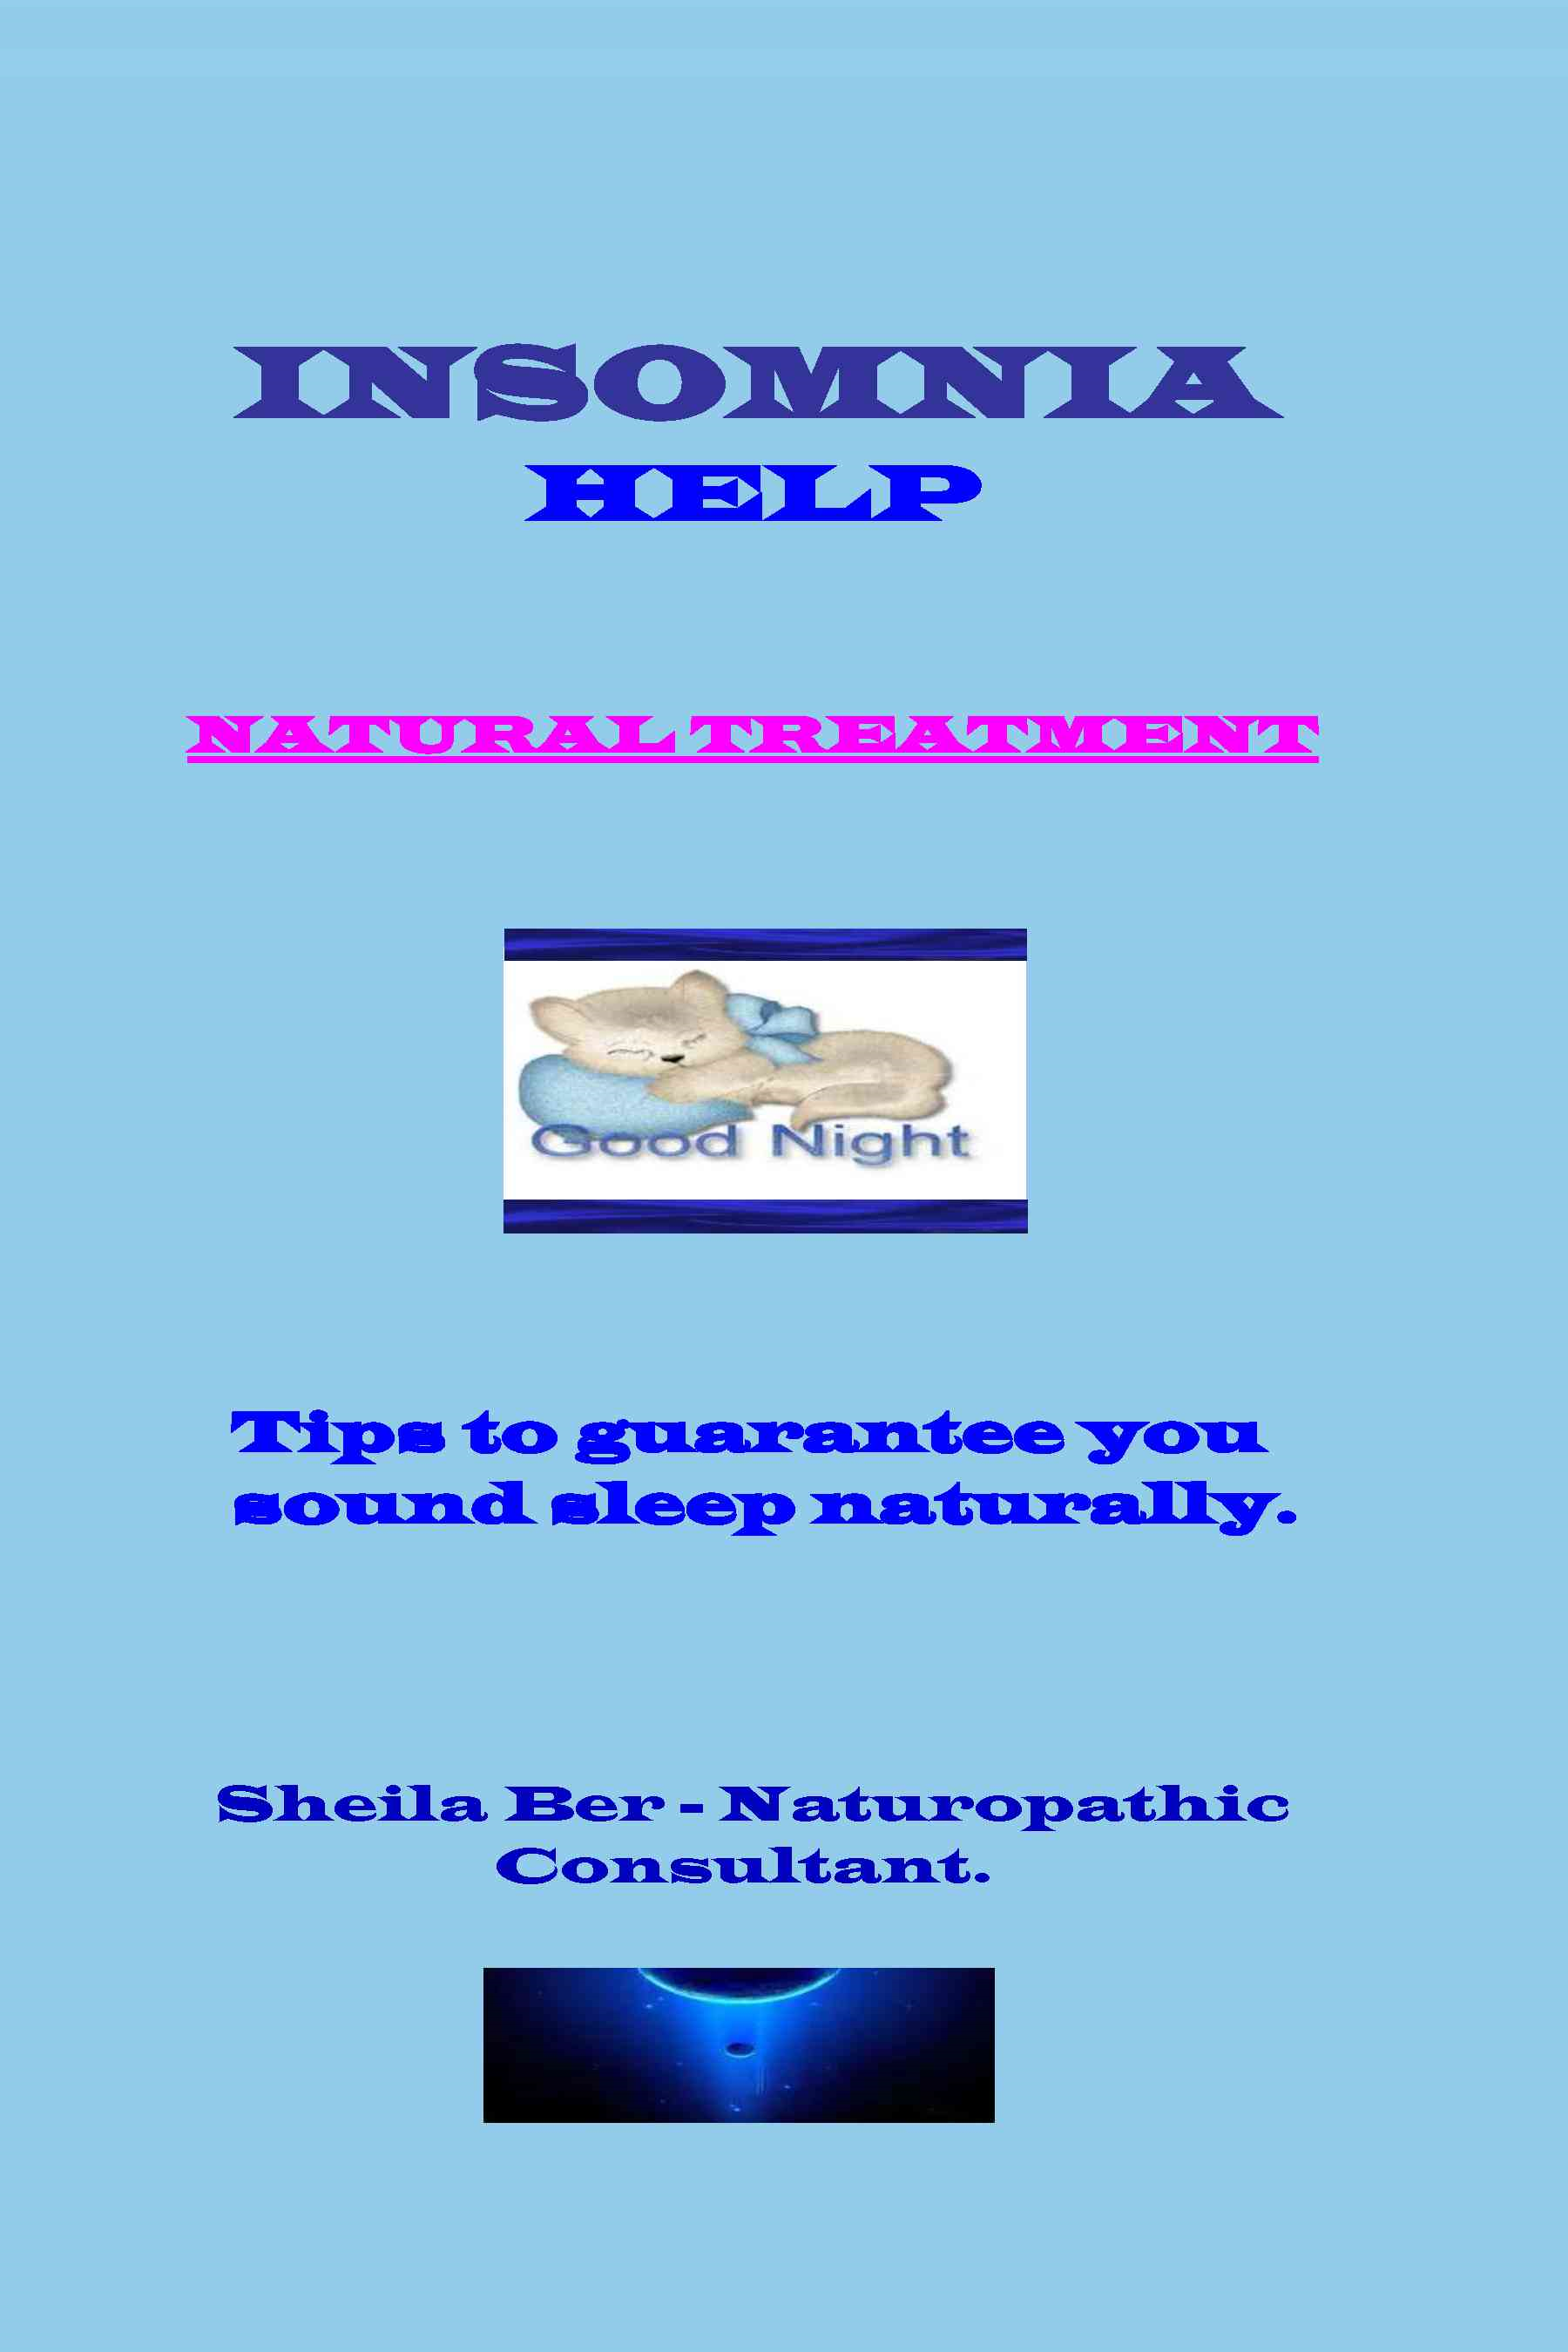 INSOMNIA HELP - NATURAL TREATMENT - Author: SHEILA BER - Naturopathic Consultant.